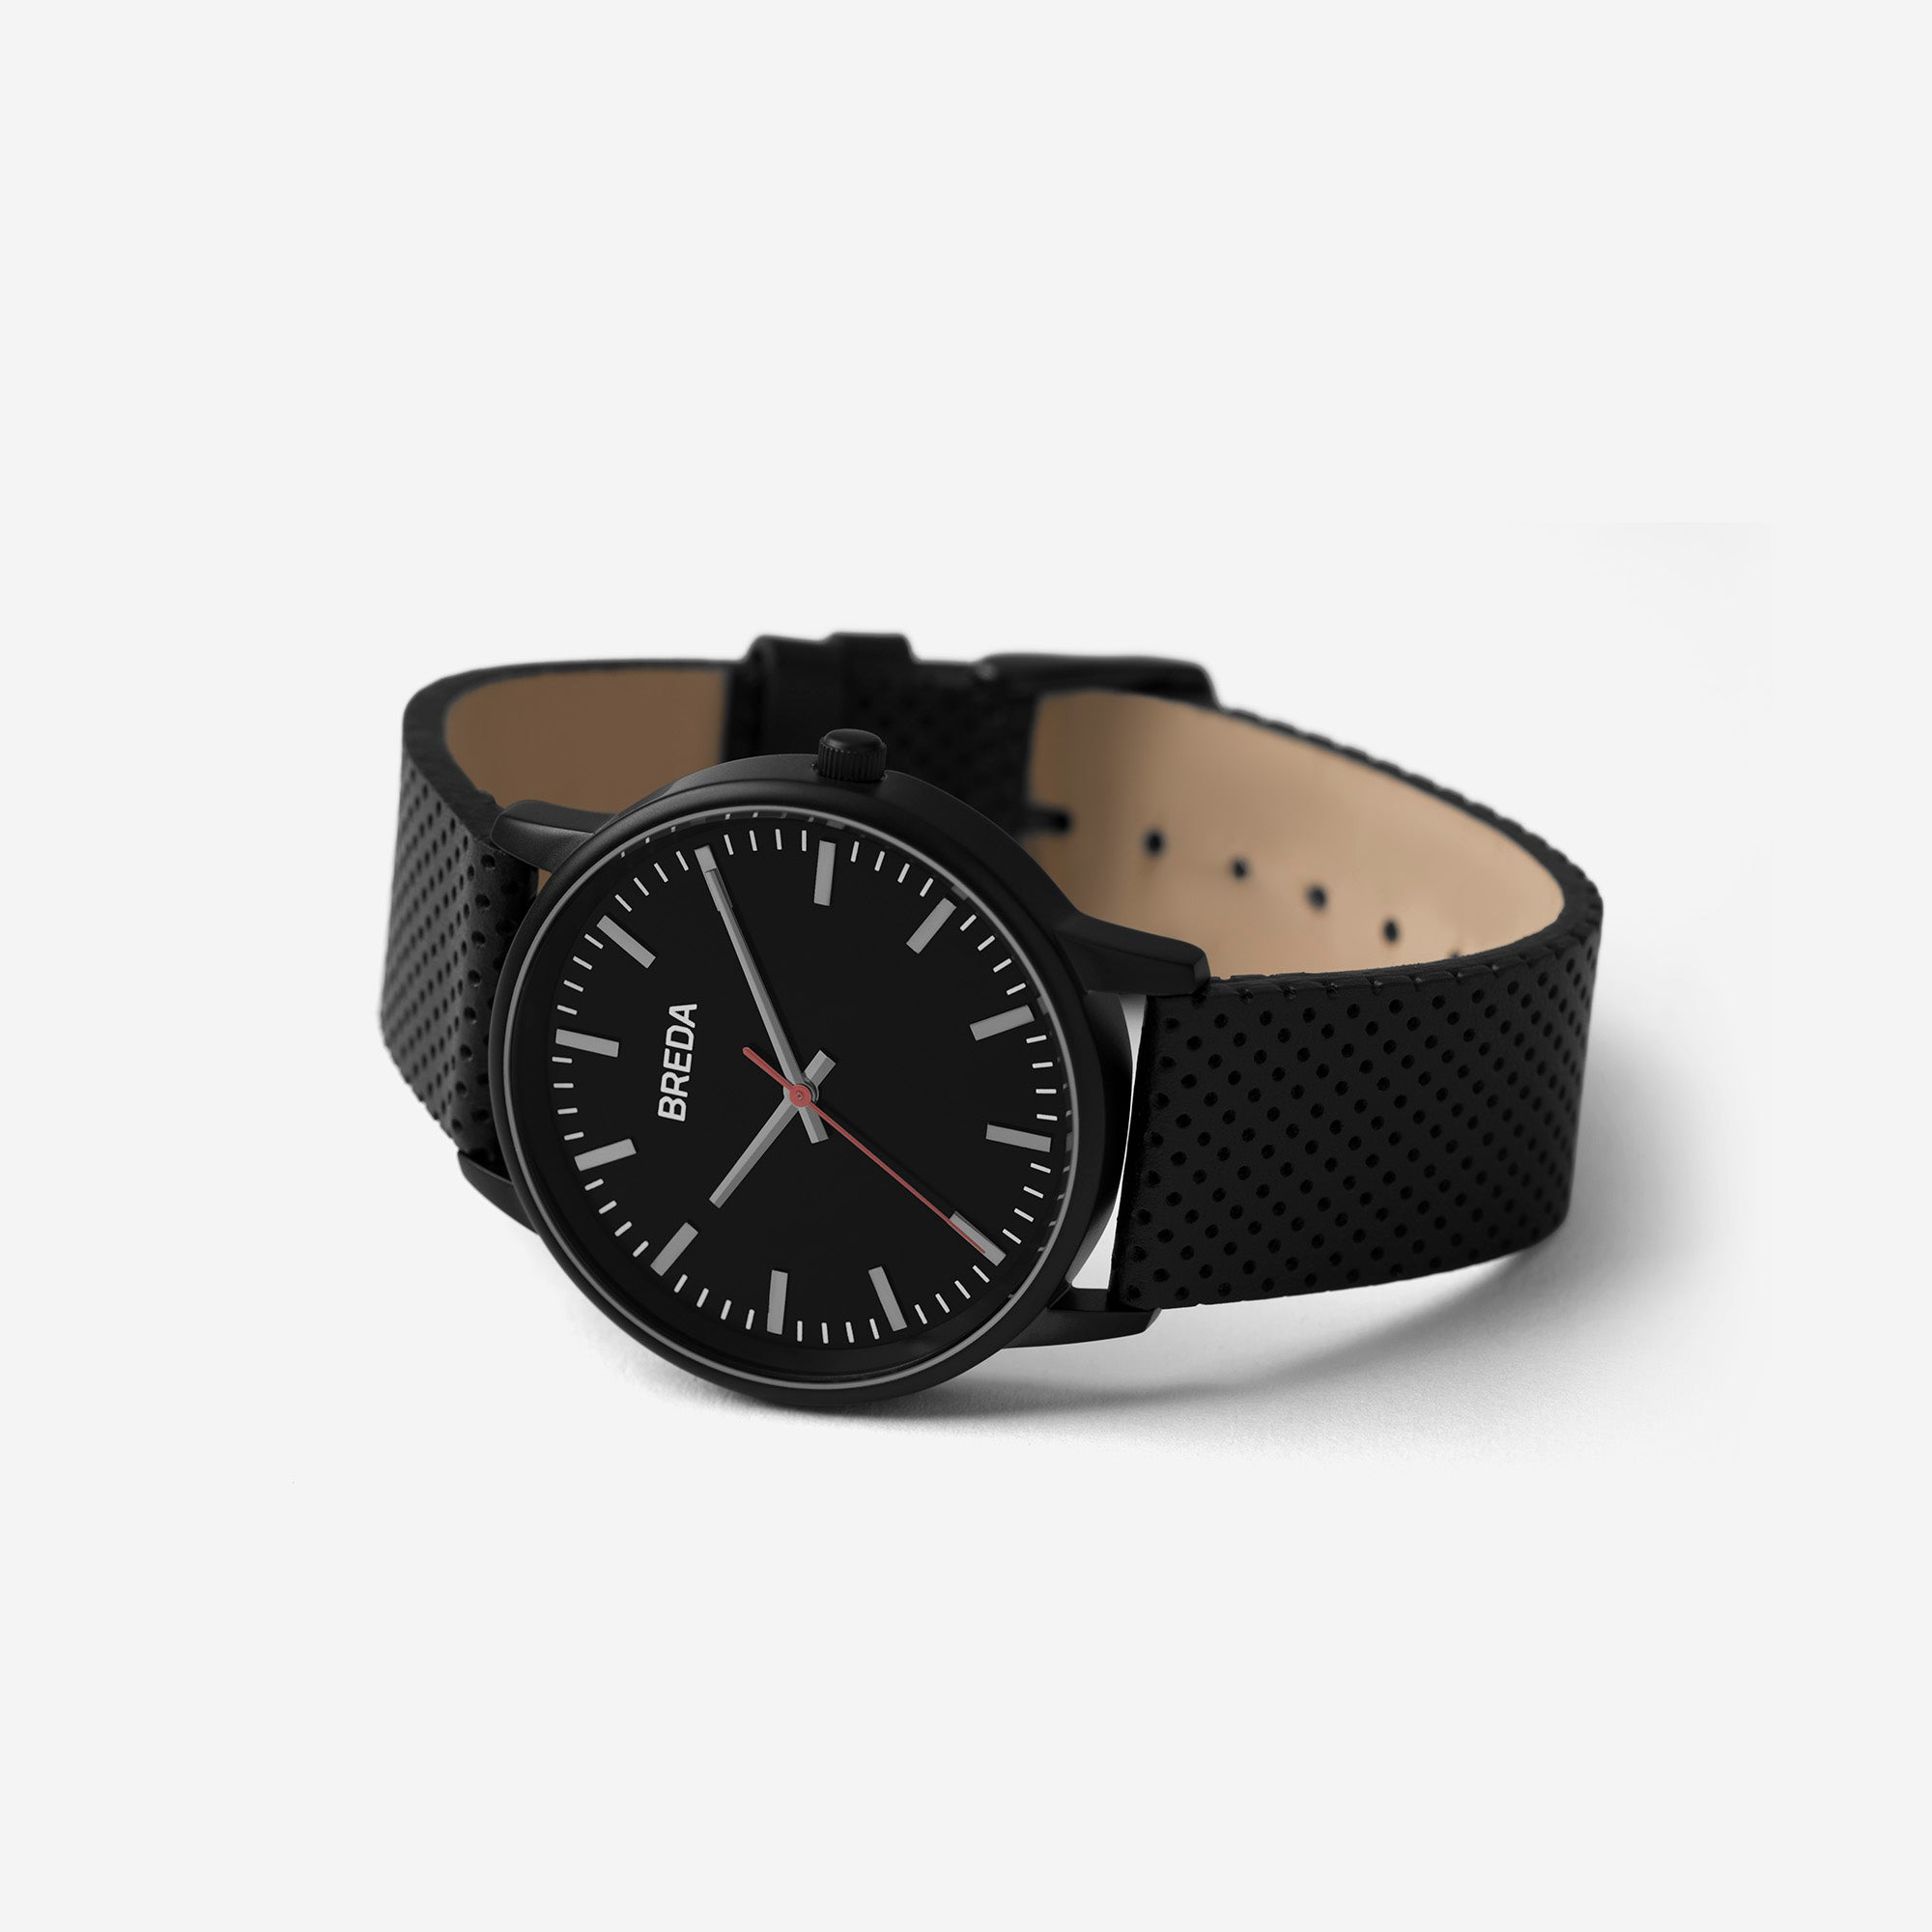 //cdn.shopify.com/s/files/1/0879/6650/products/breda-zapf-1725d-black-black-leather-watch-angle_7dc1ed09-381f-440a-9e17-7a7e95d39afb_1024x1024.jpg?v=1542818420